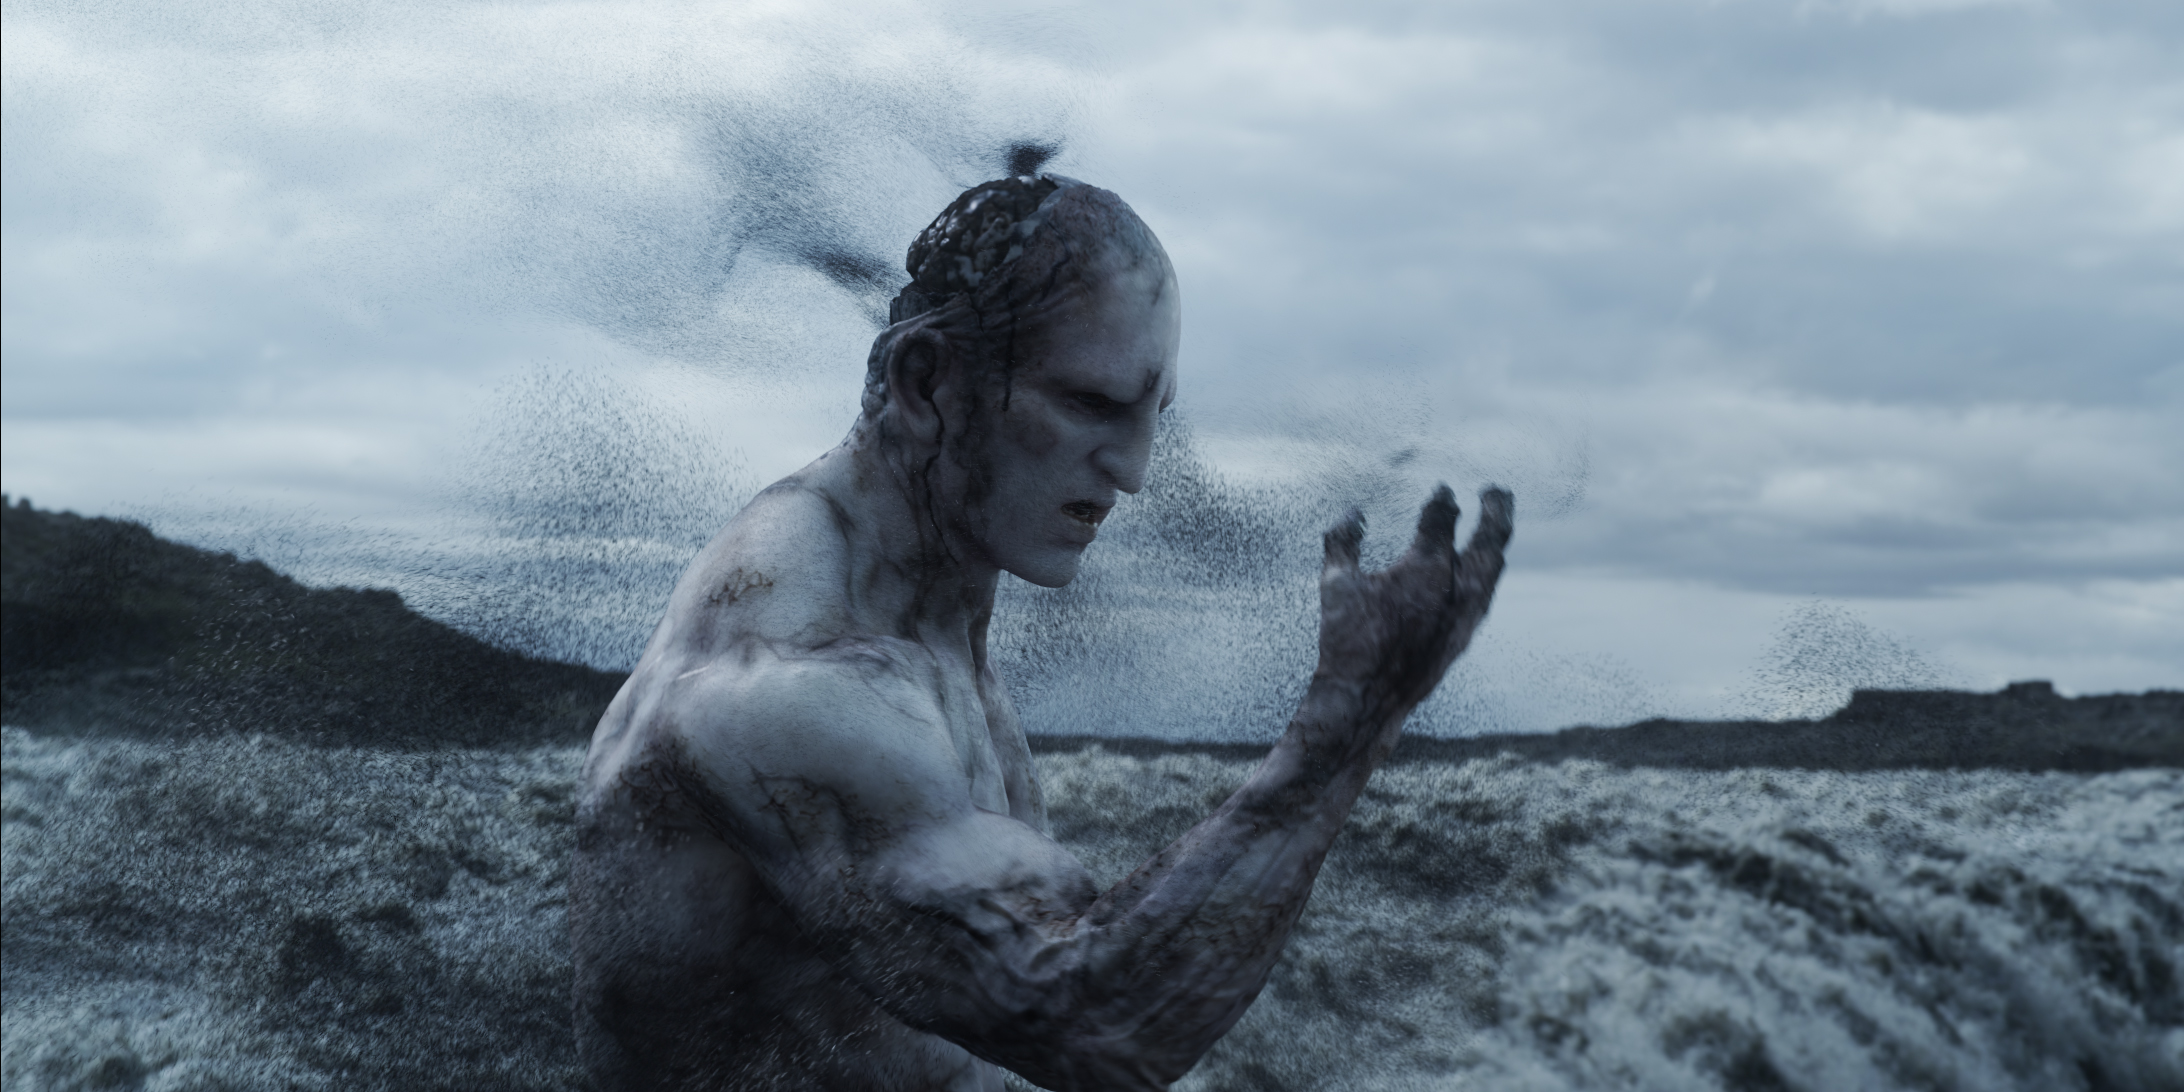 Prometheus Rebuilding Hallowed Vfx Space Fxguide